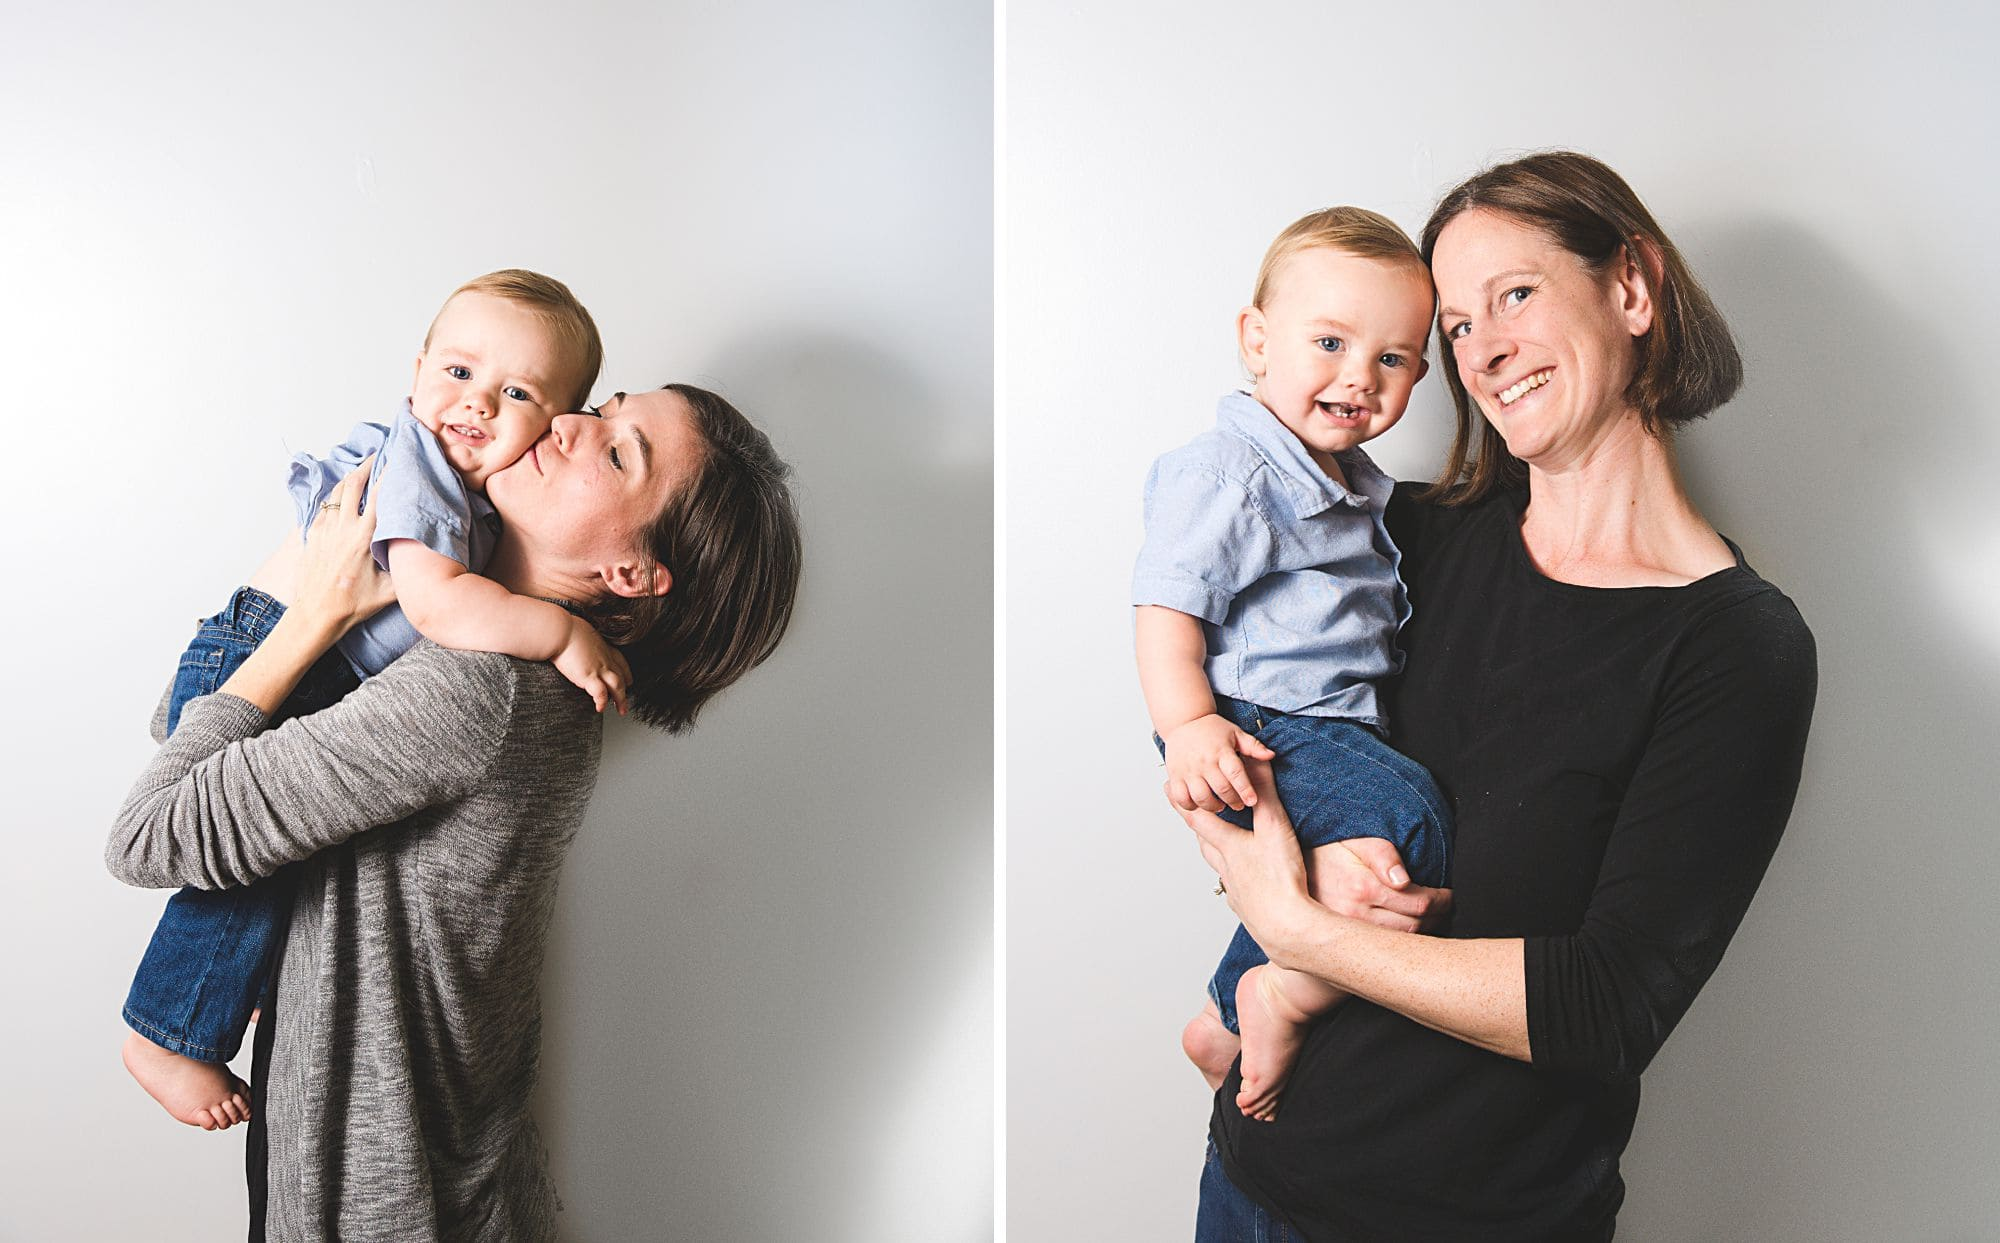 Collage with lesbian couple and their toddler and baby boys in a studio portrait session